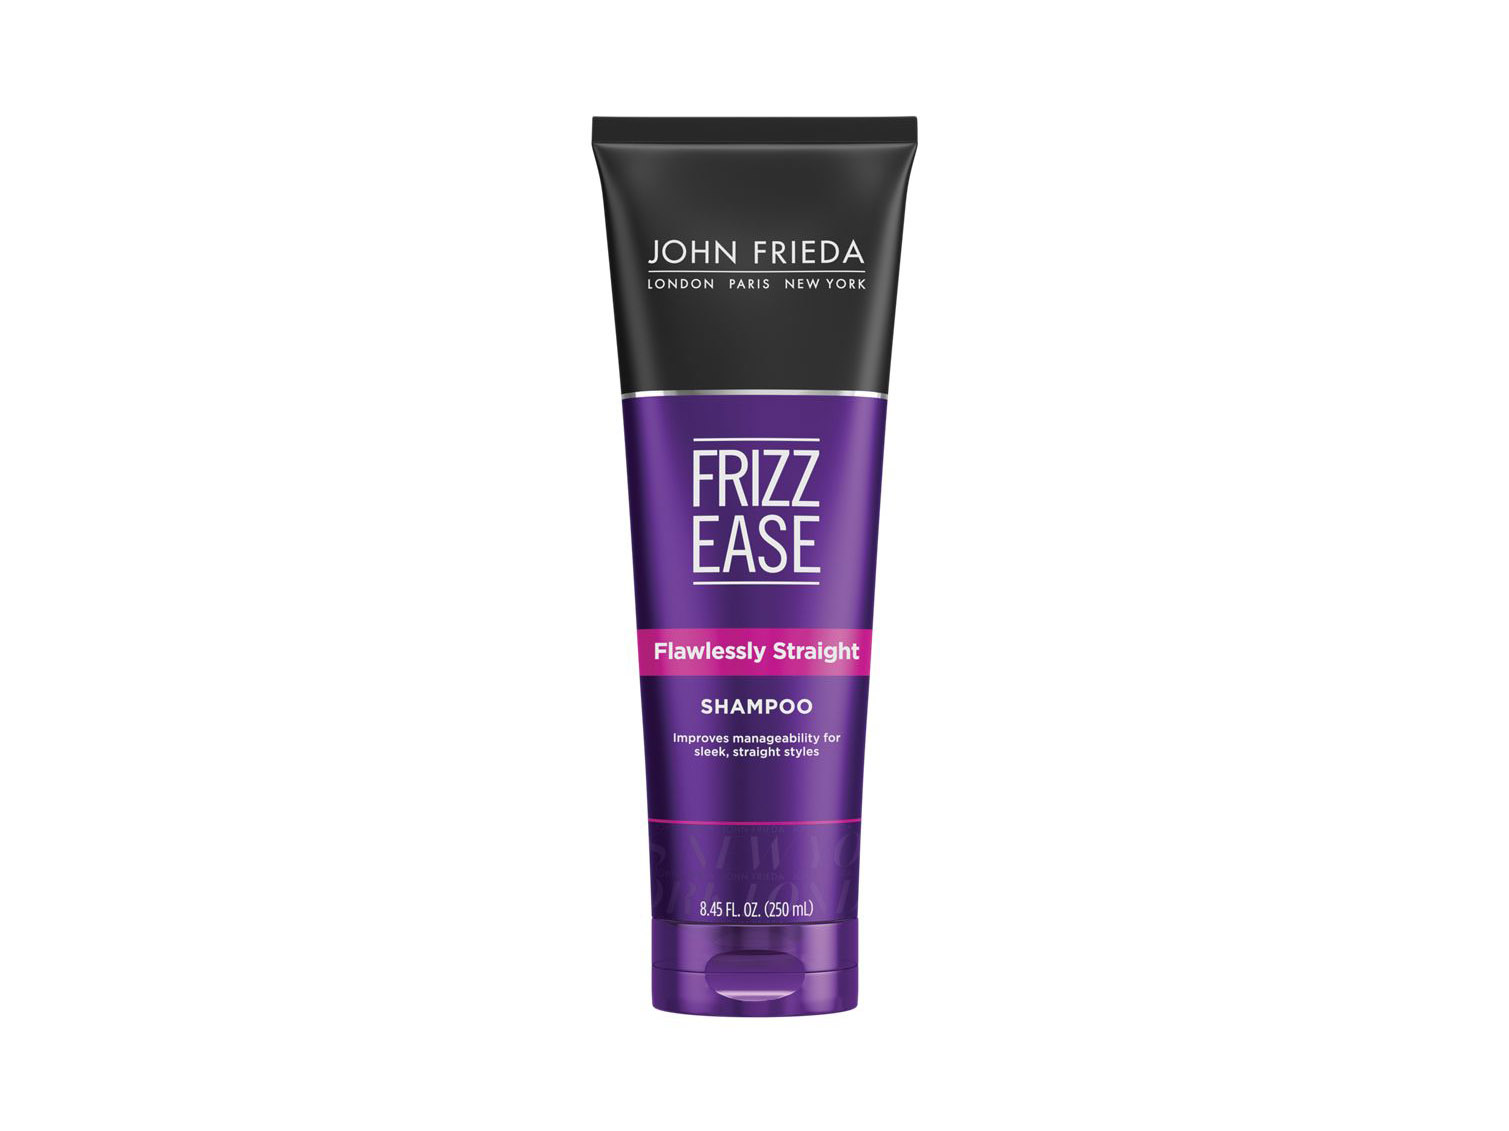 John Frieda Frizz Ease Flawlessly Straight Shampoo and Conditioner